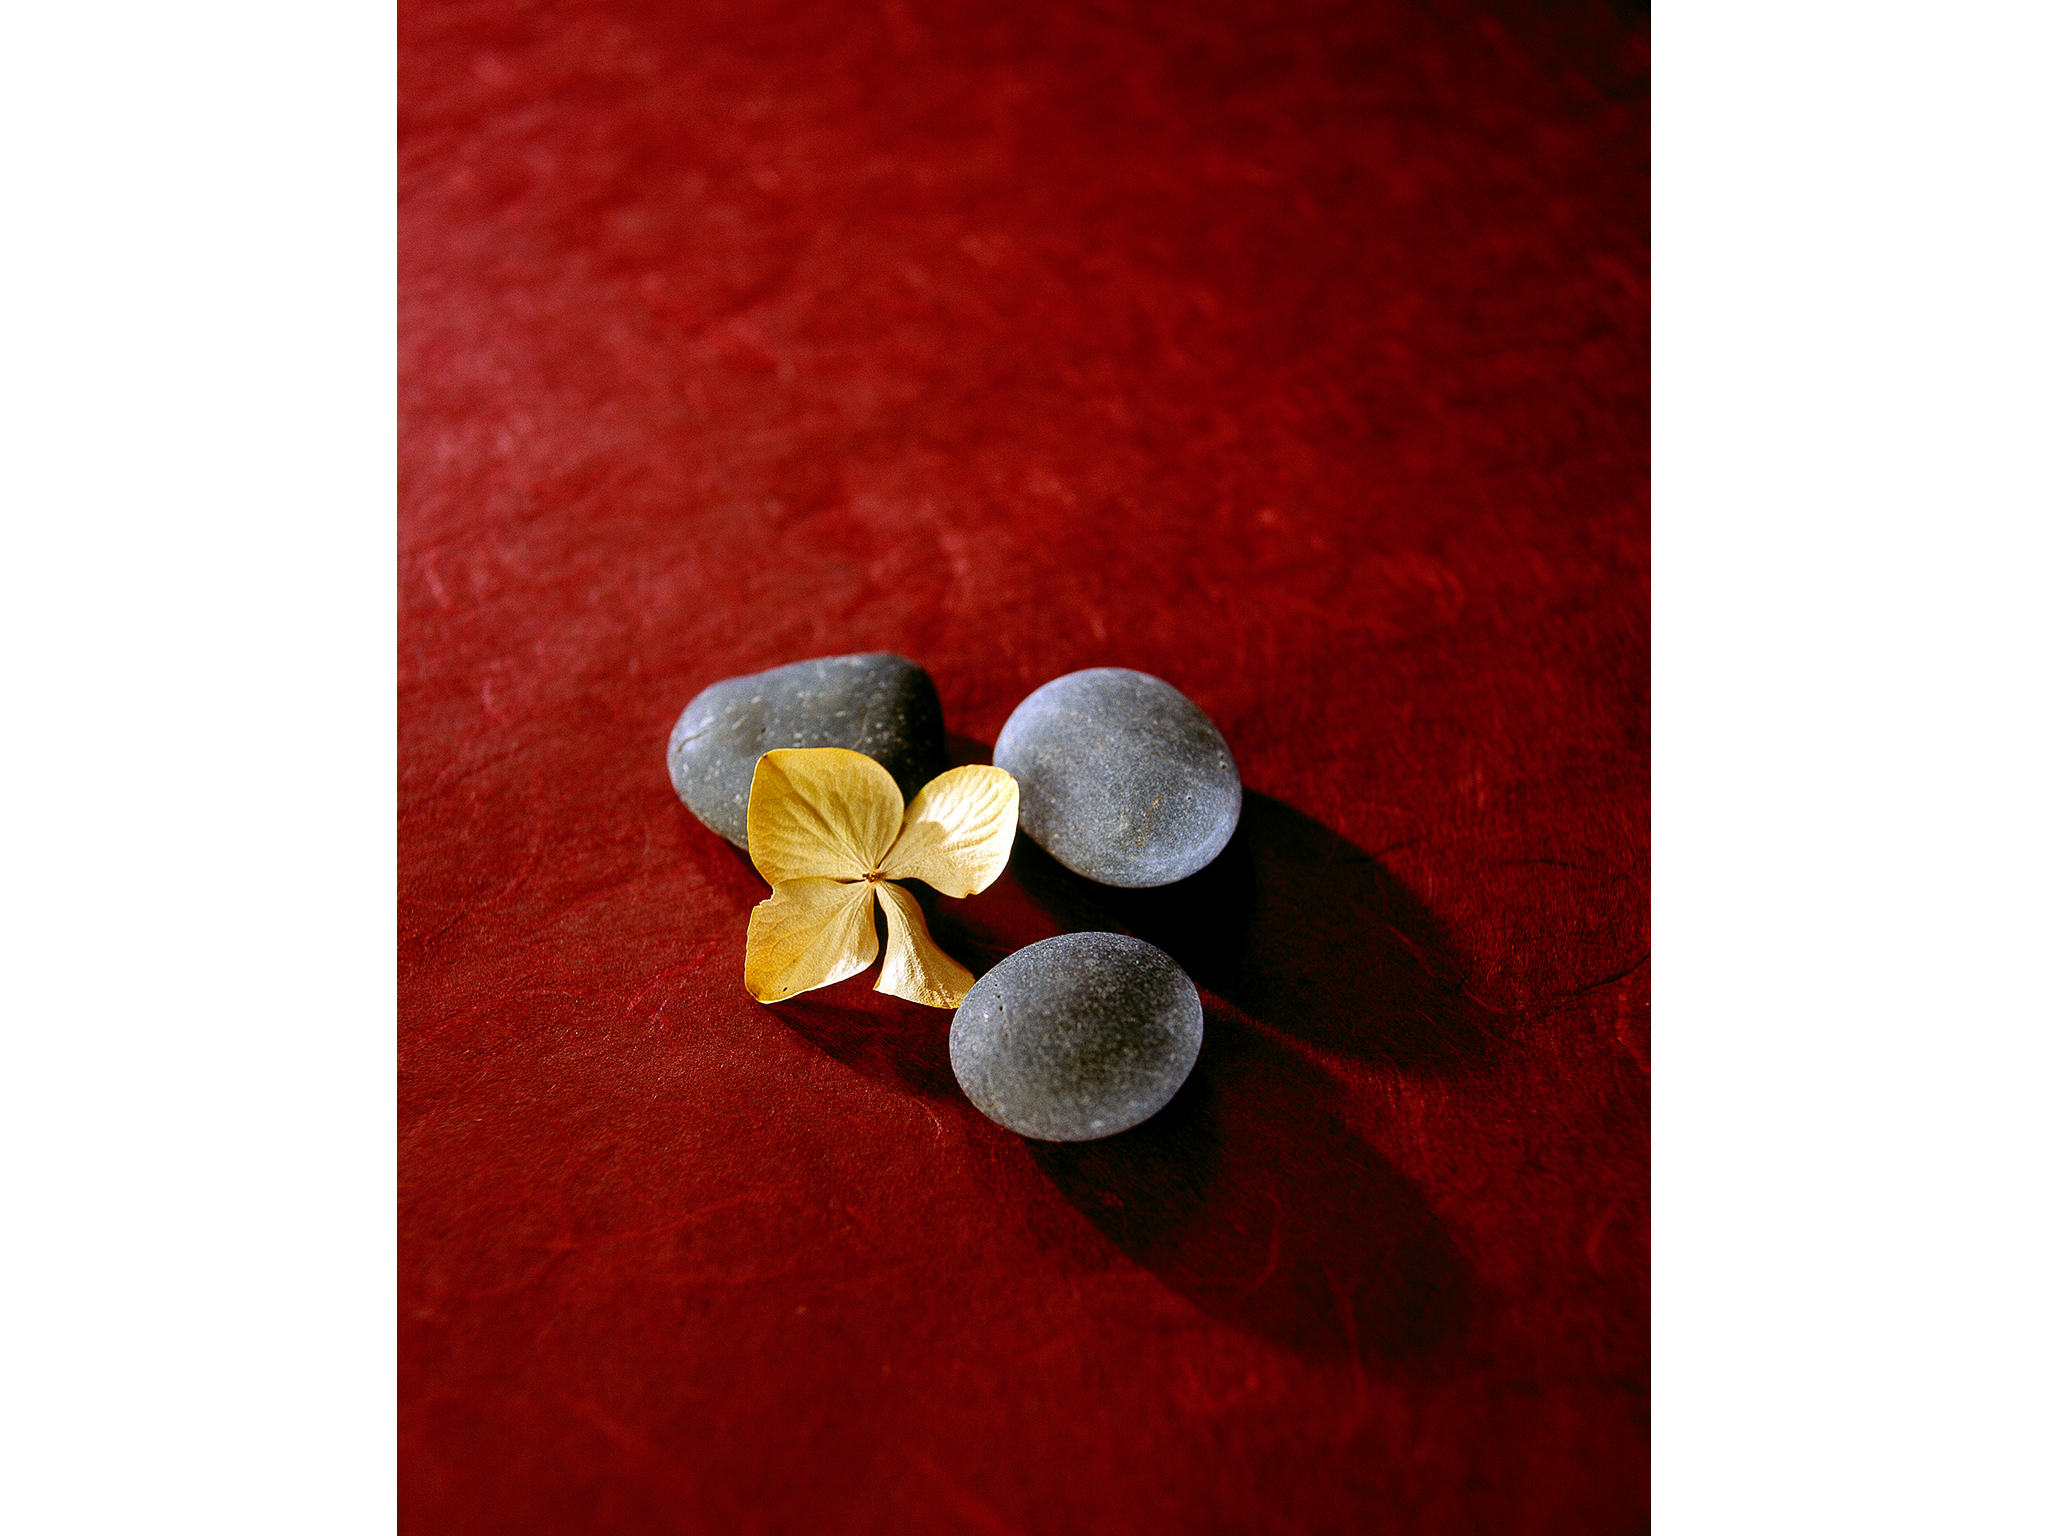 Beauty photograph of rocks and flower